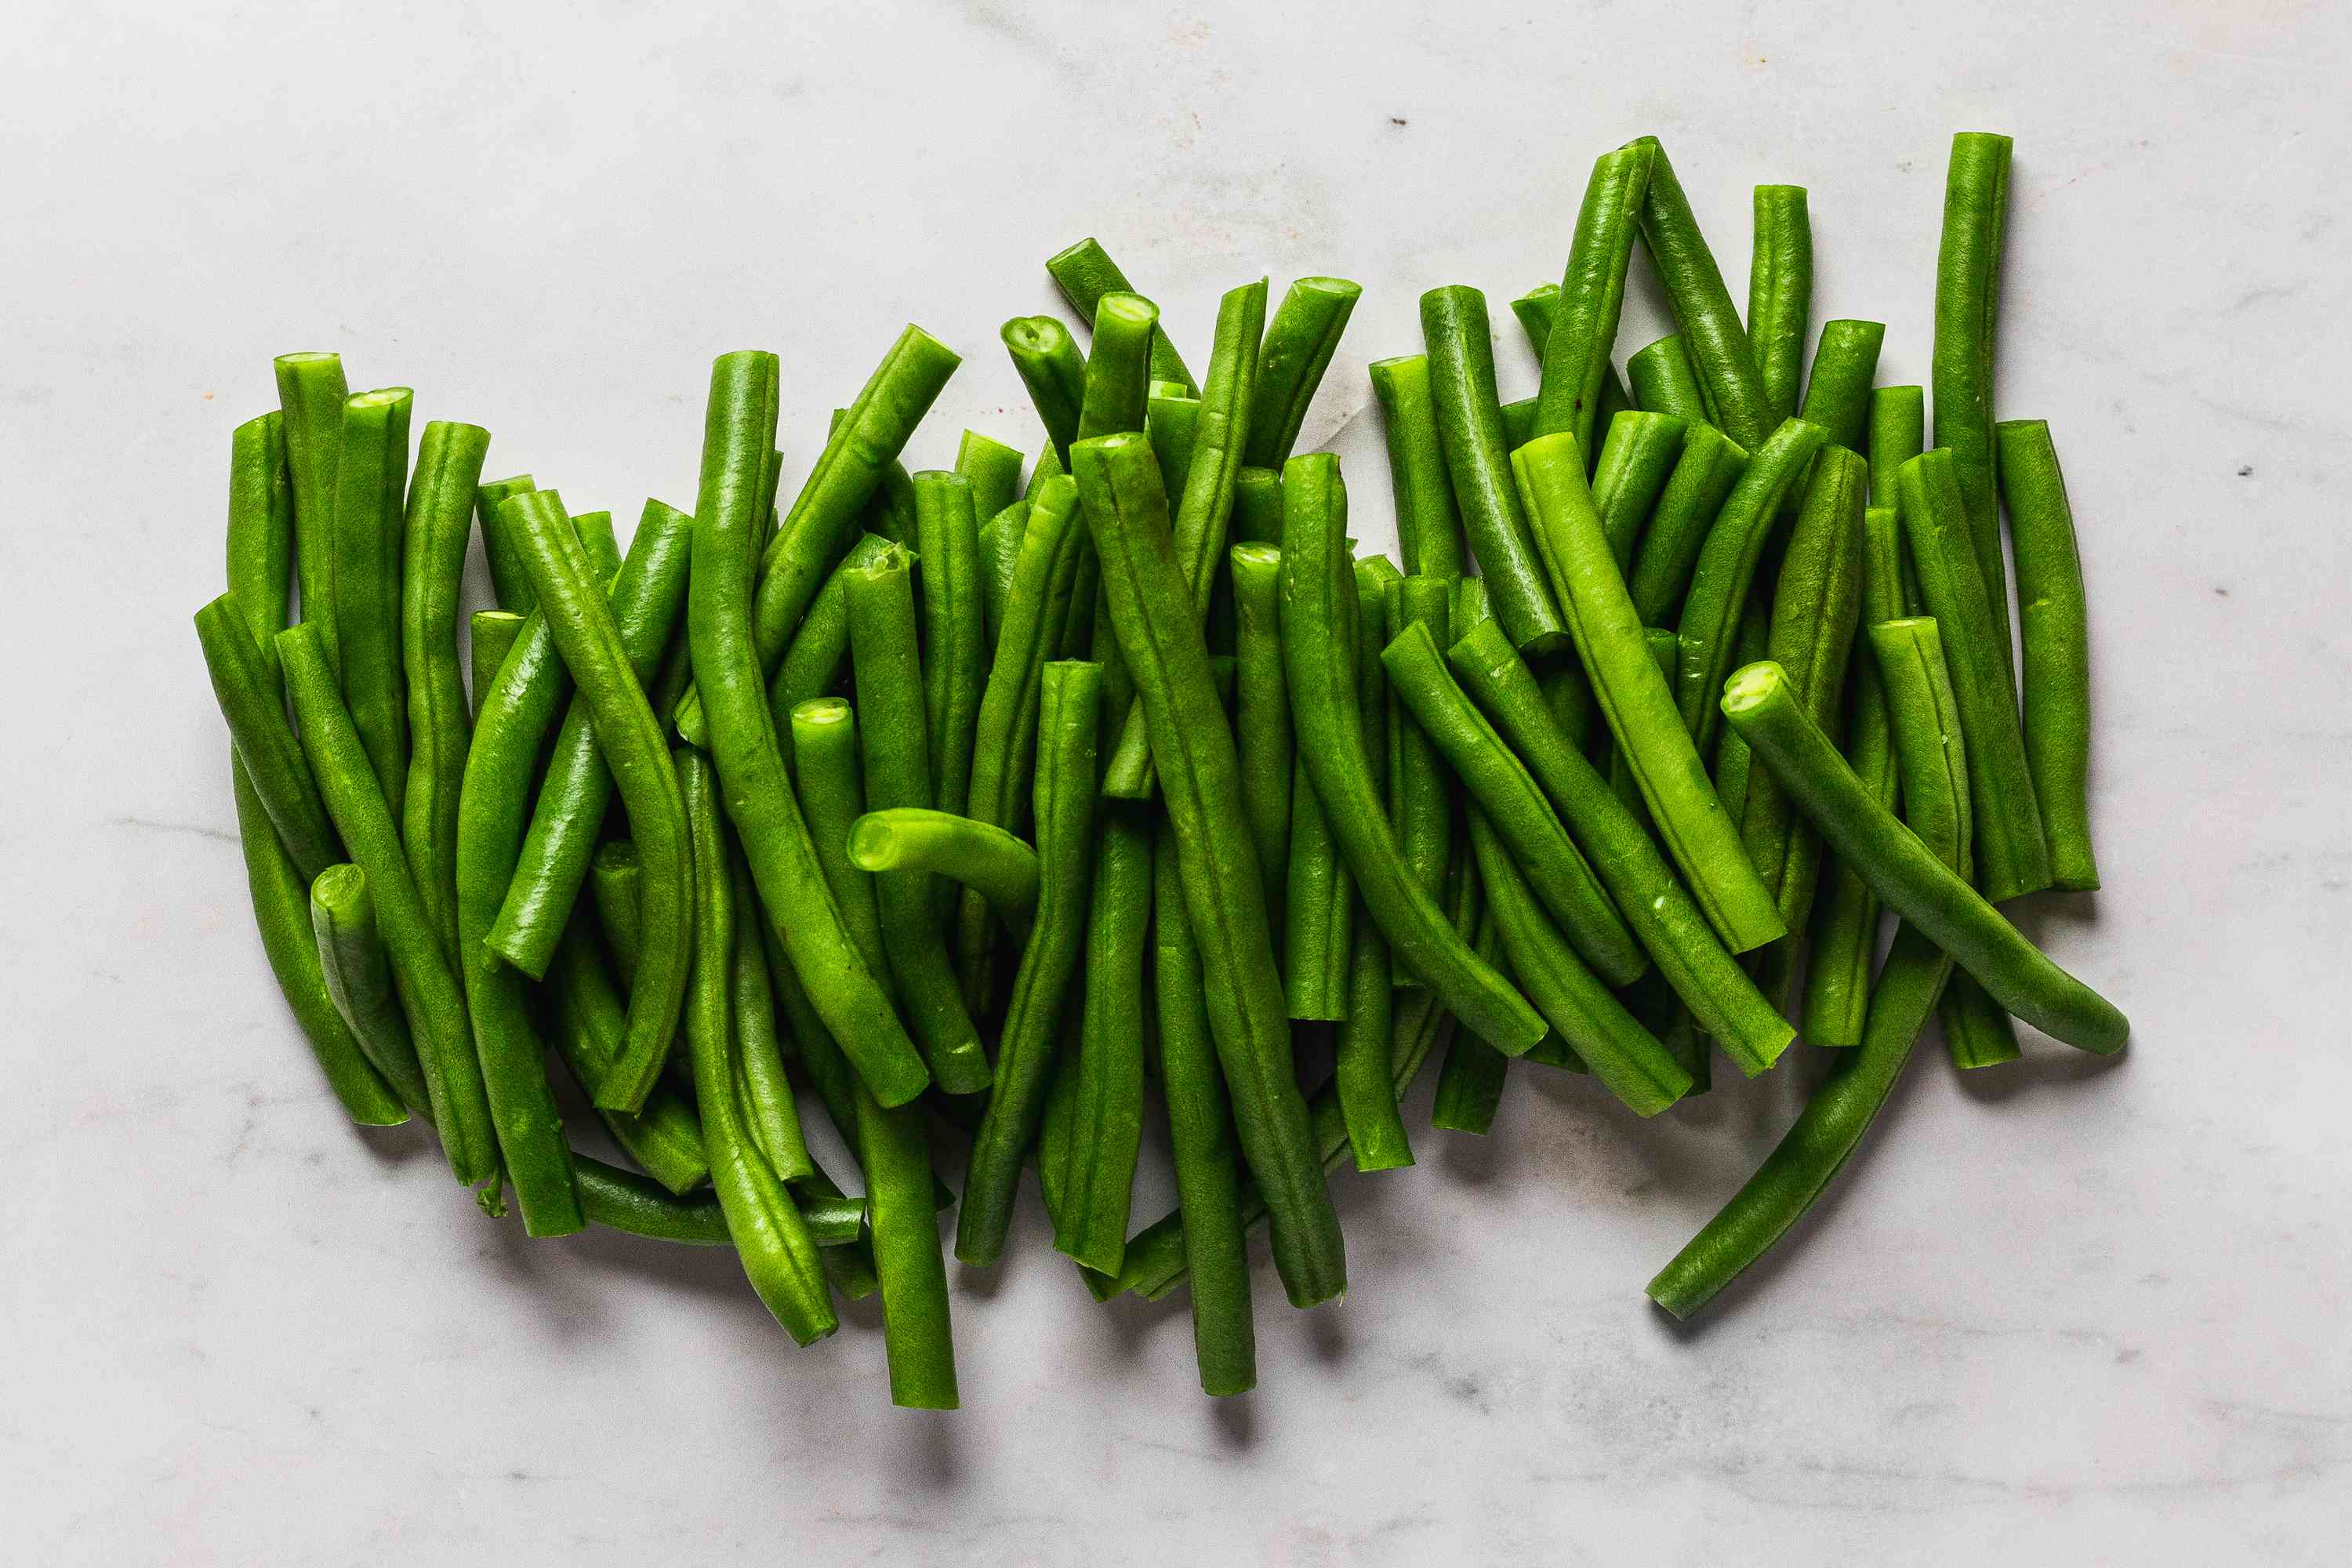 Wash green beans and snap off stem ends